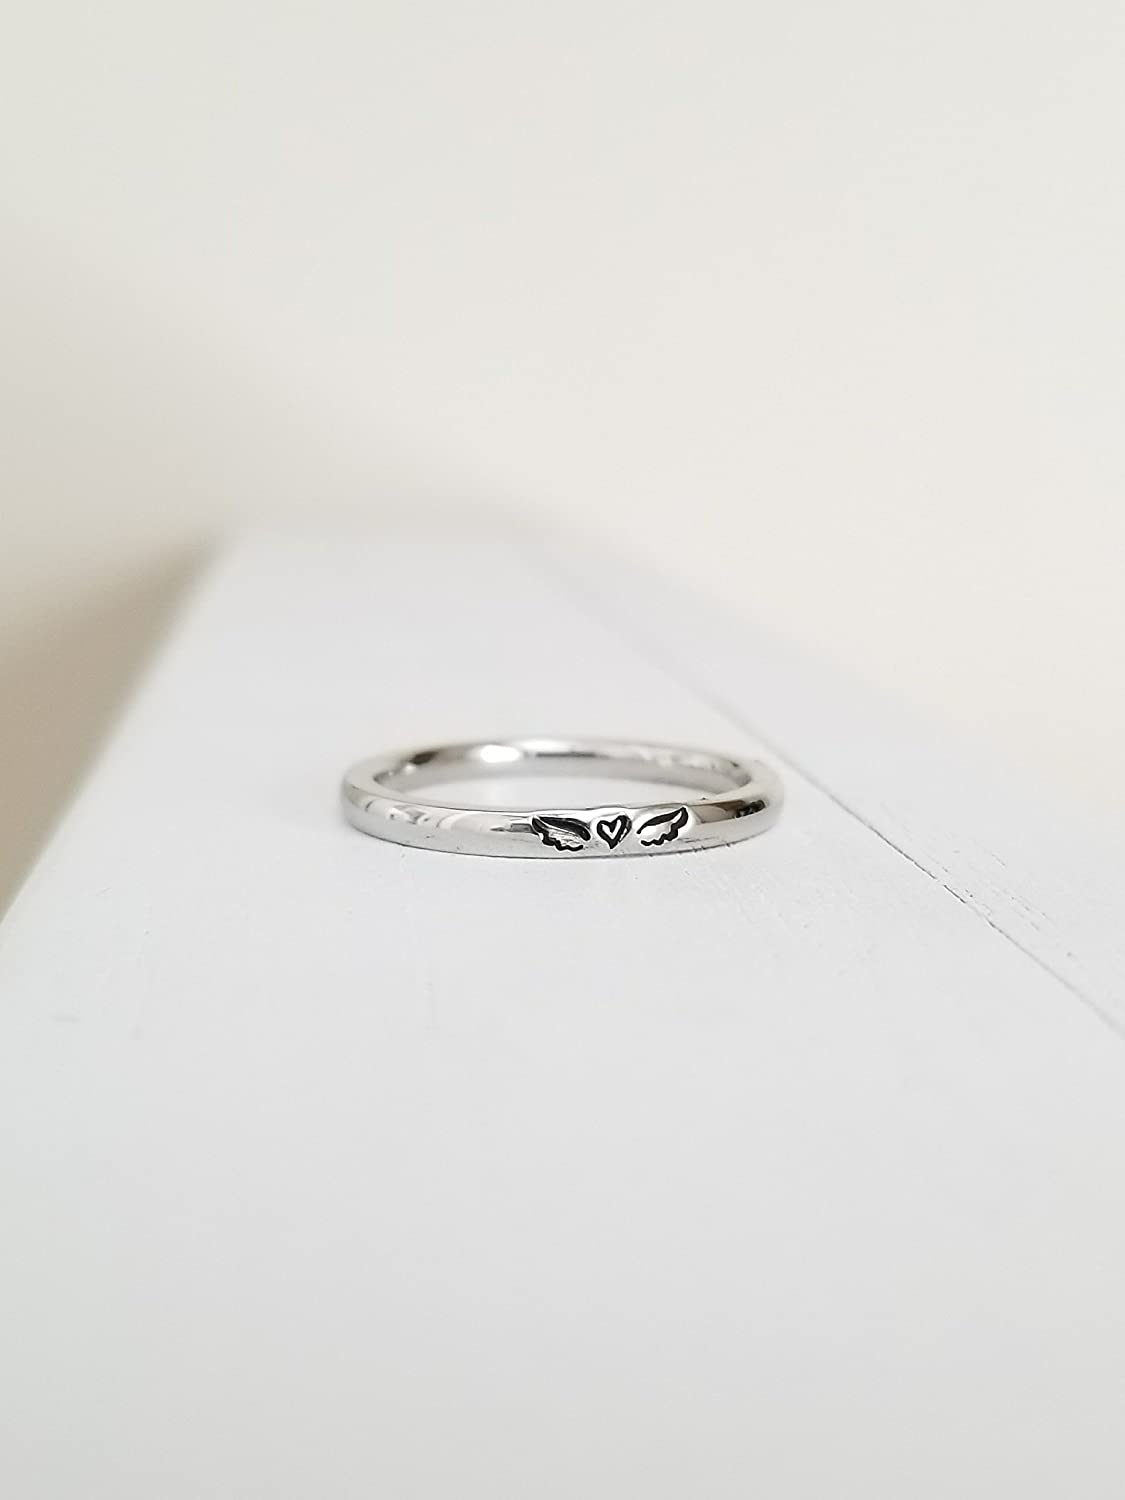 Miscarriage Ring Angel Wing Ring Tiny 2mm Hand Stamped Hypoallergenic Stainless Steel Personalized